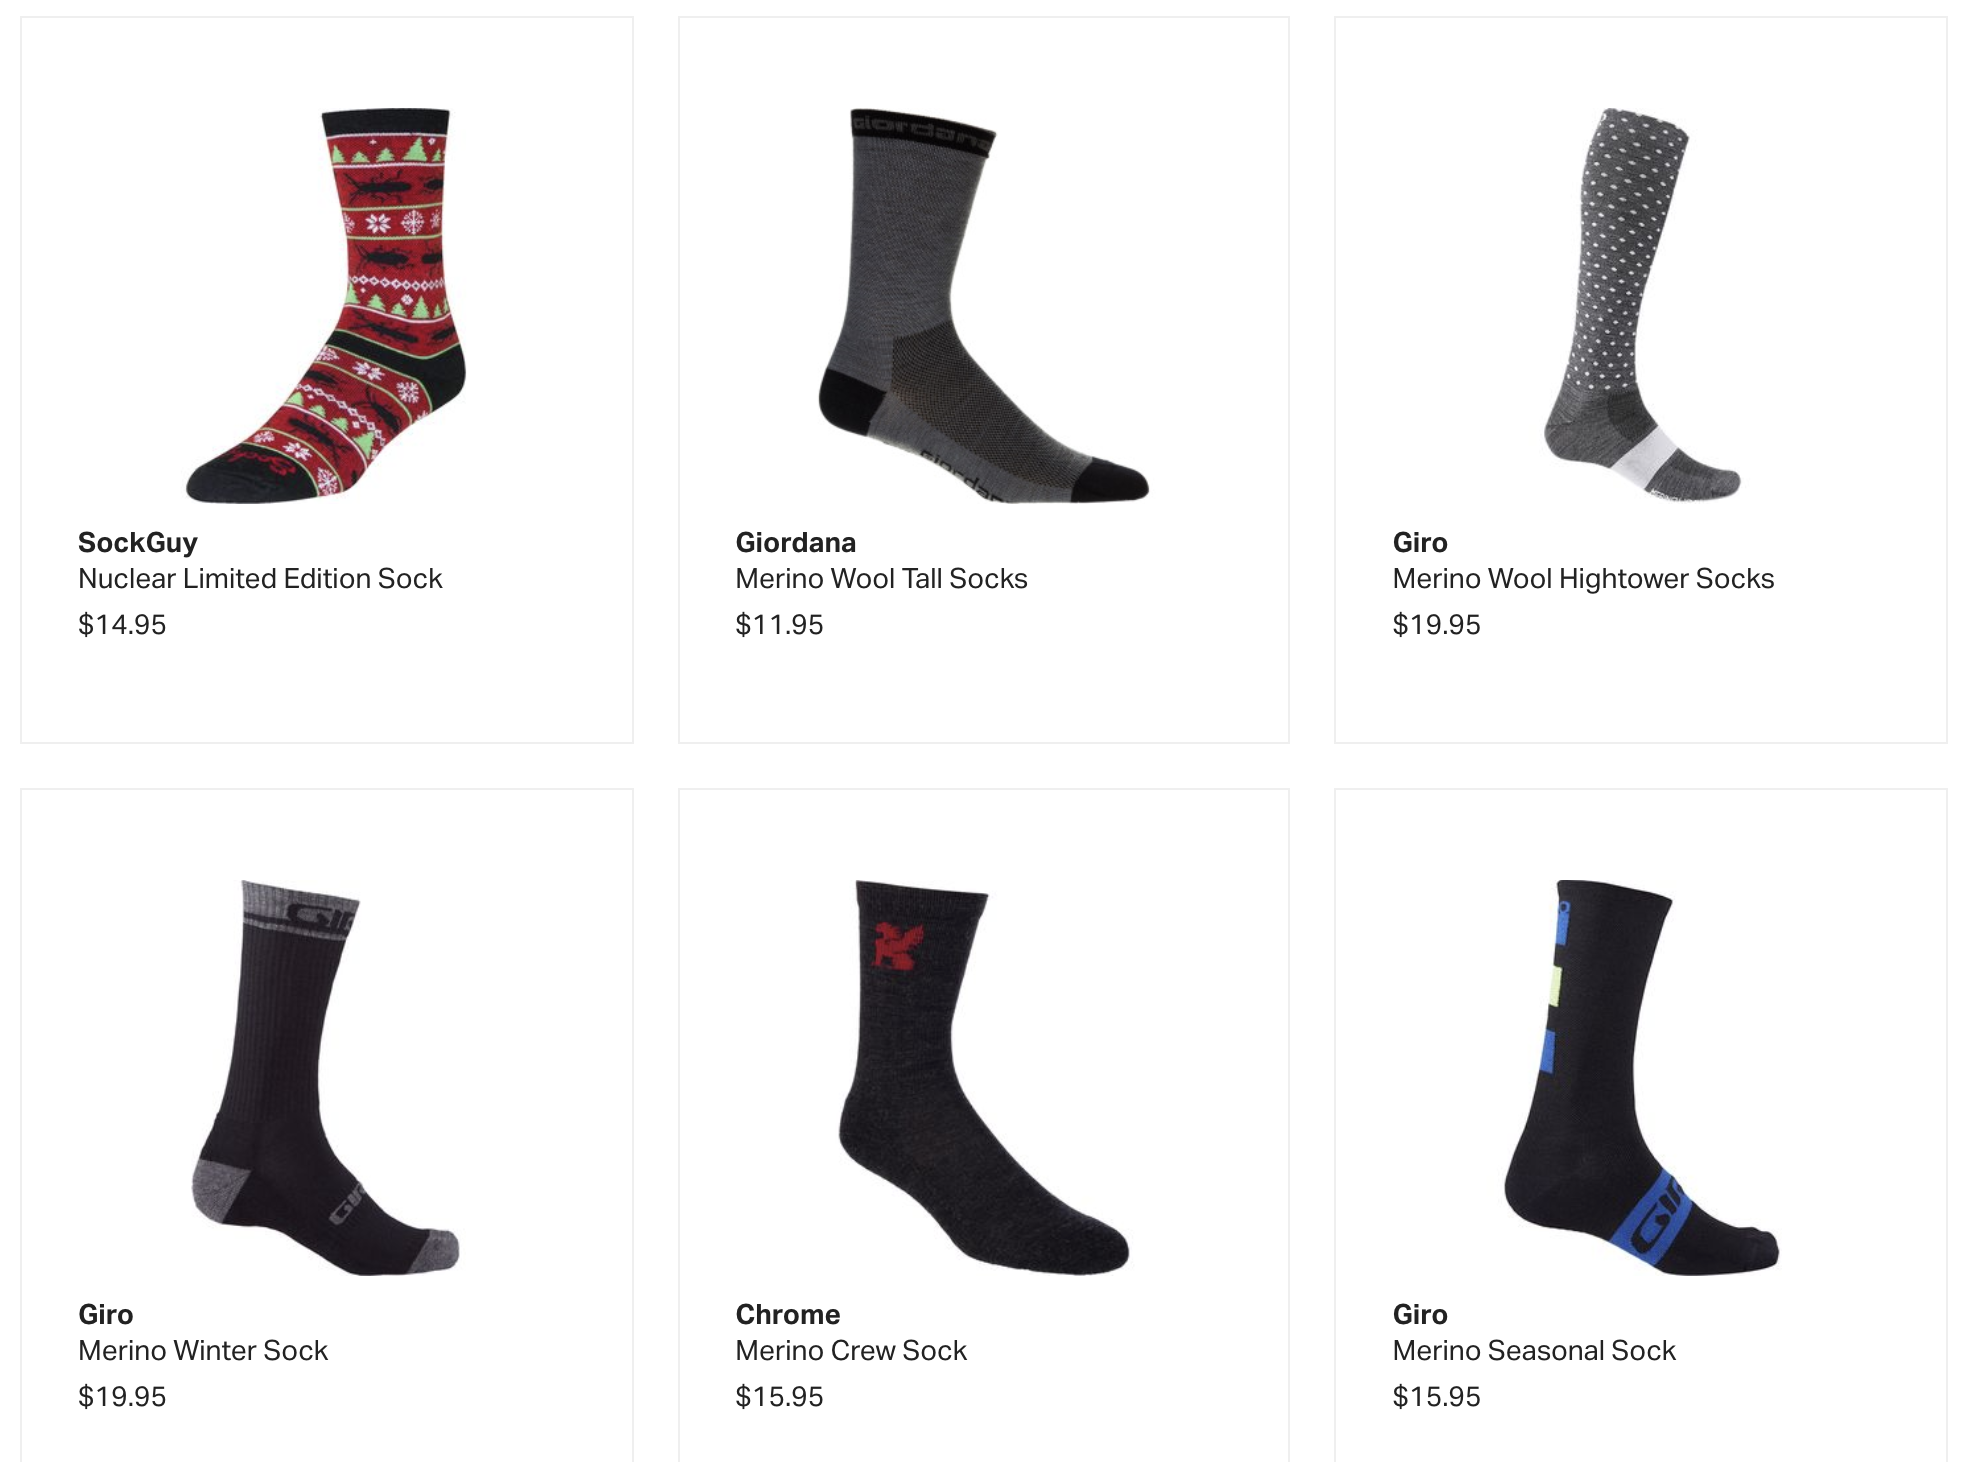 Buy Cycling Wool Socks at Backcountry.com